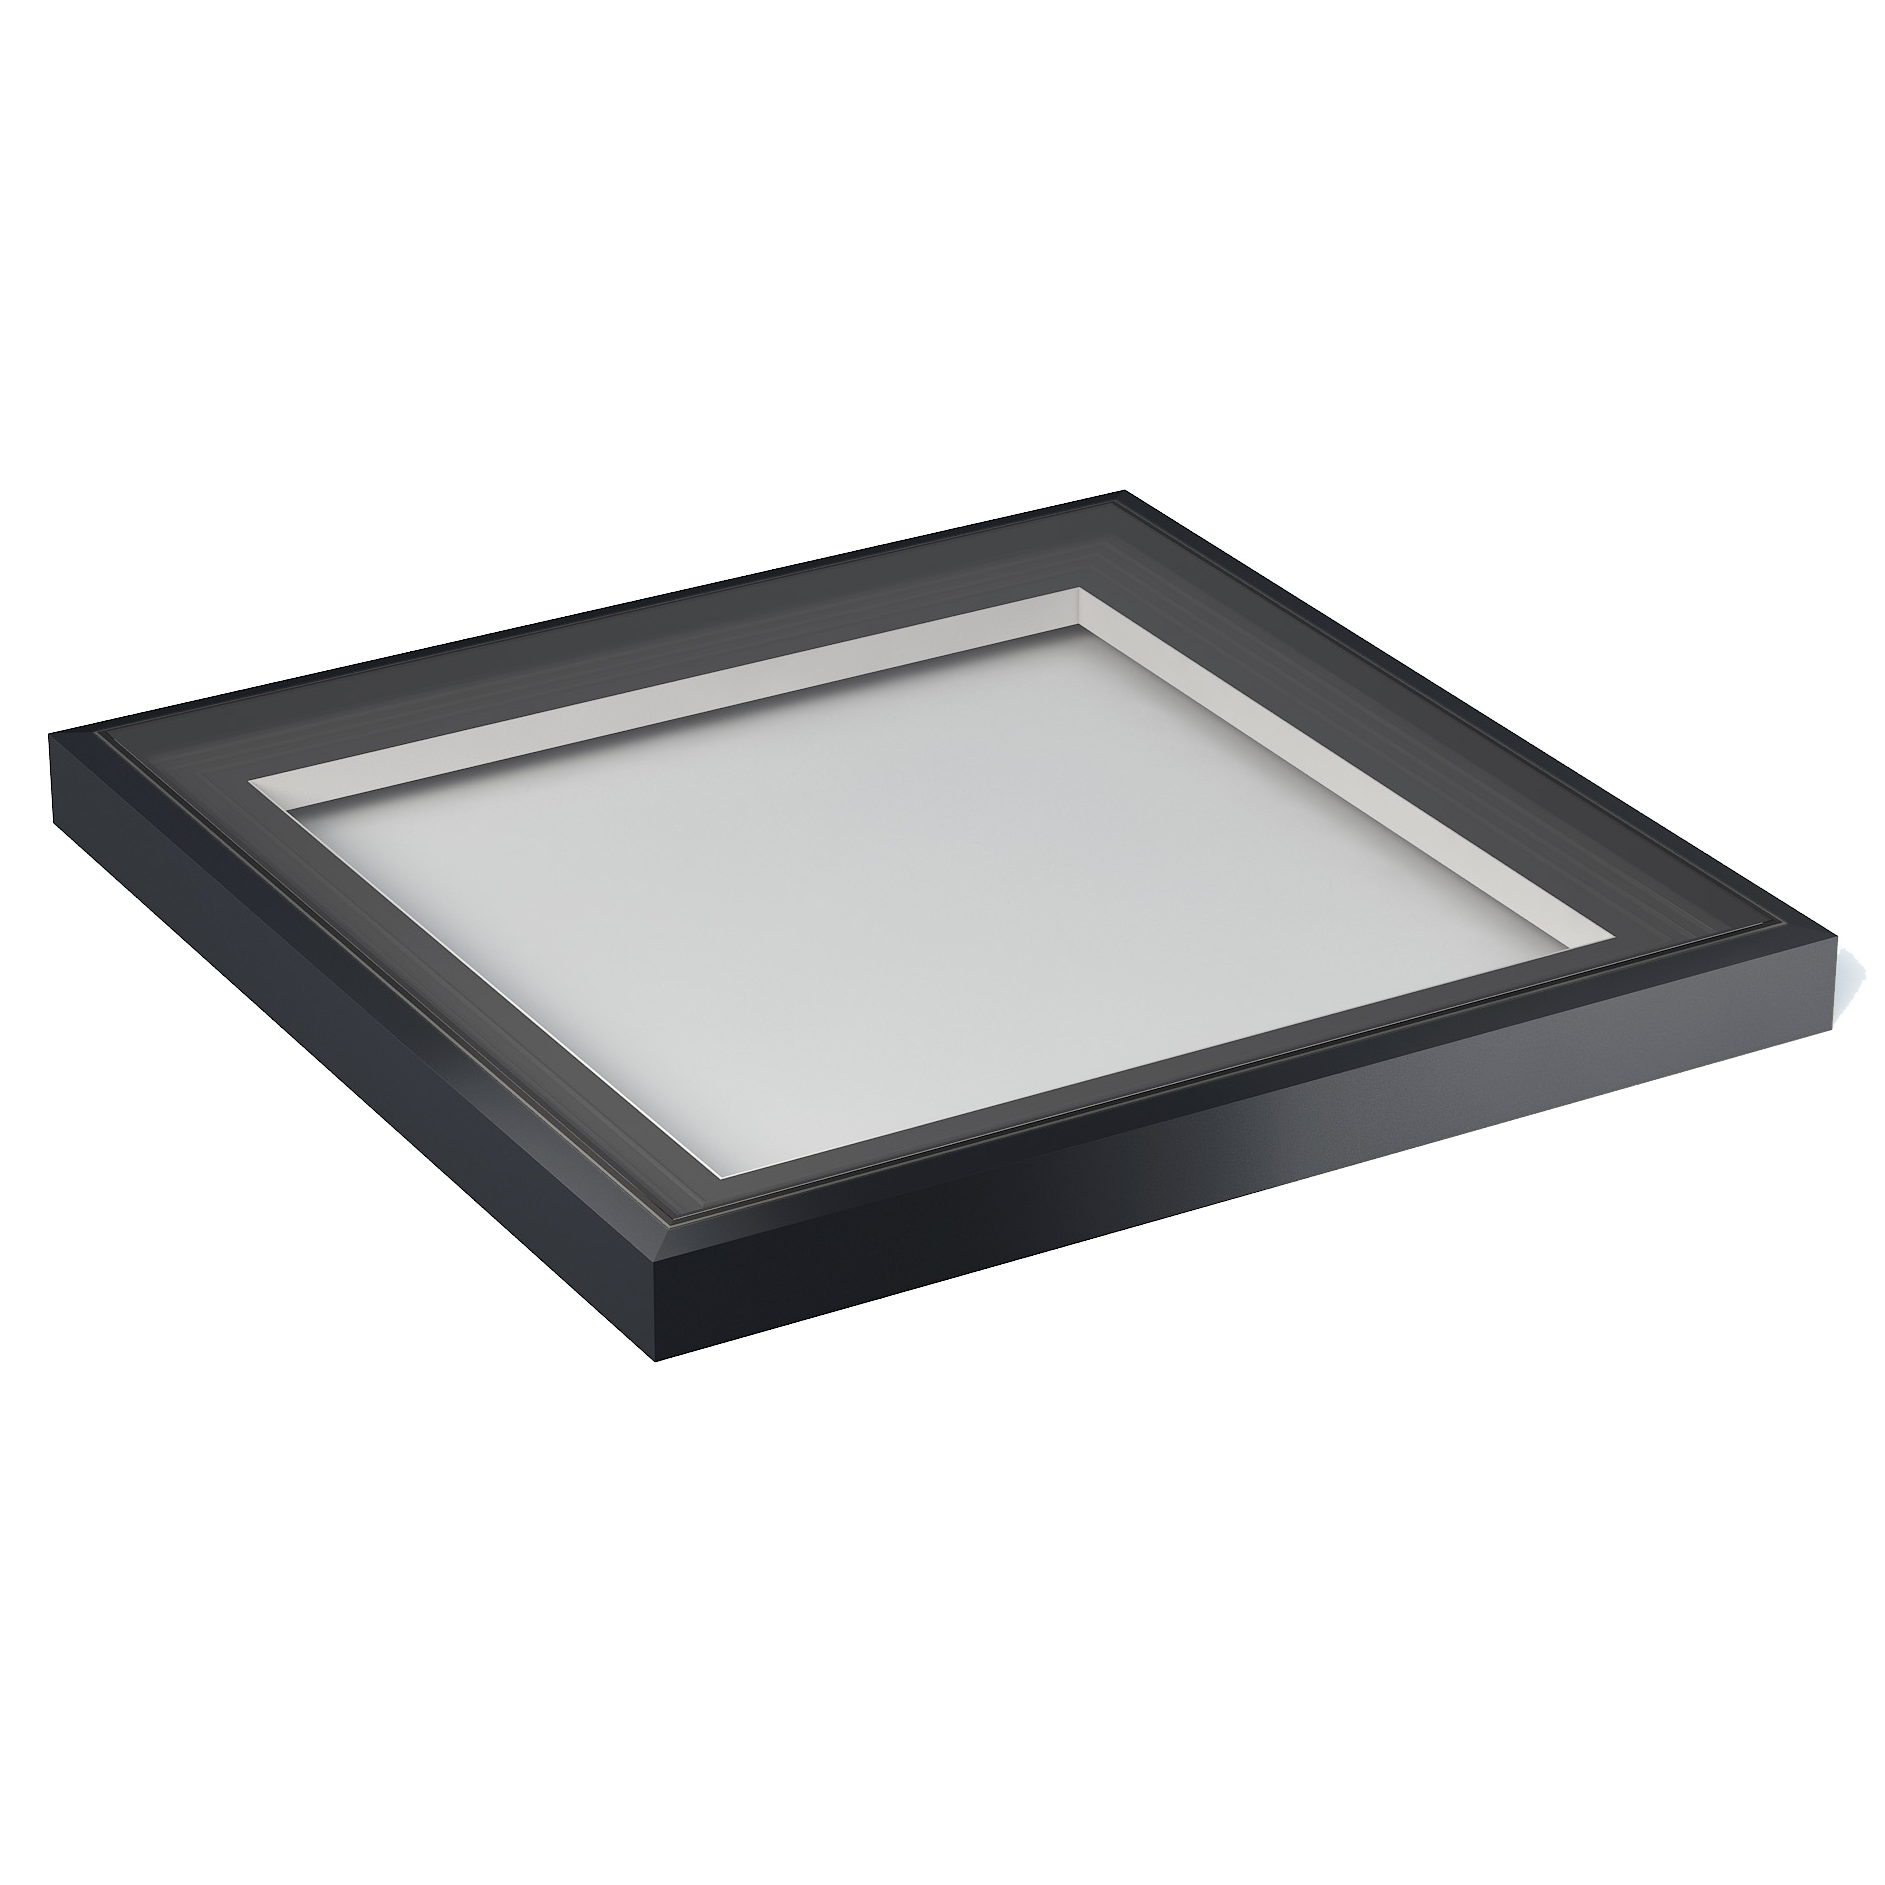 Flat Rooflights (1000mm x 1000mm | Anthracite Grey on White)